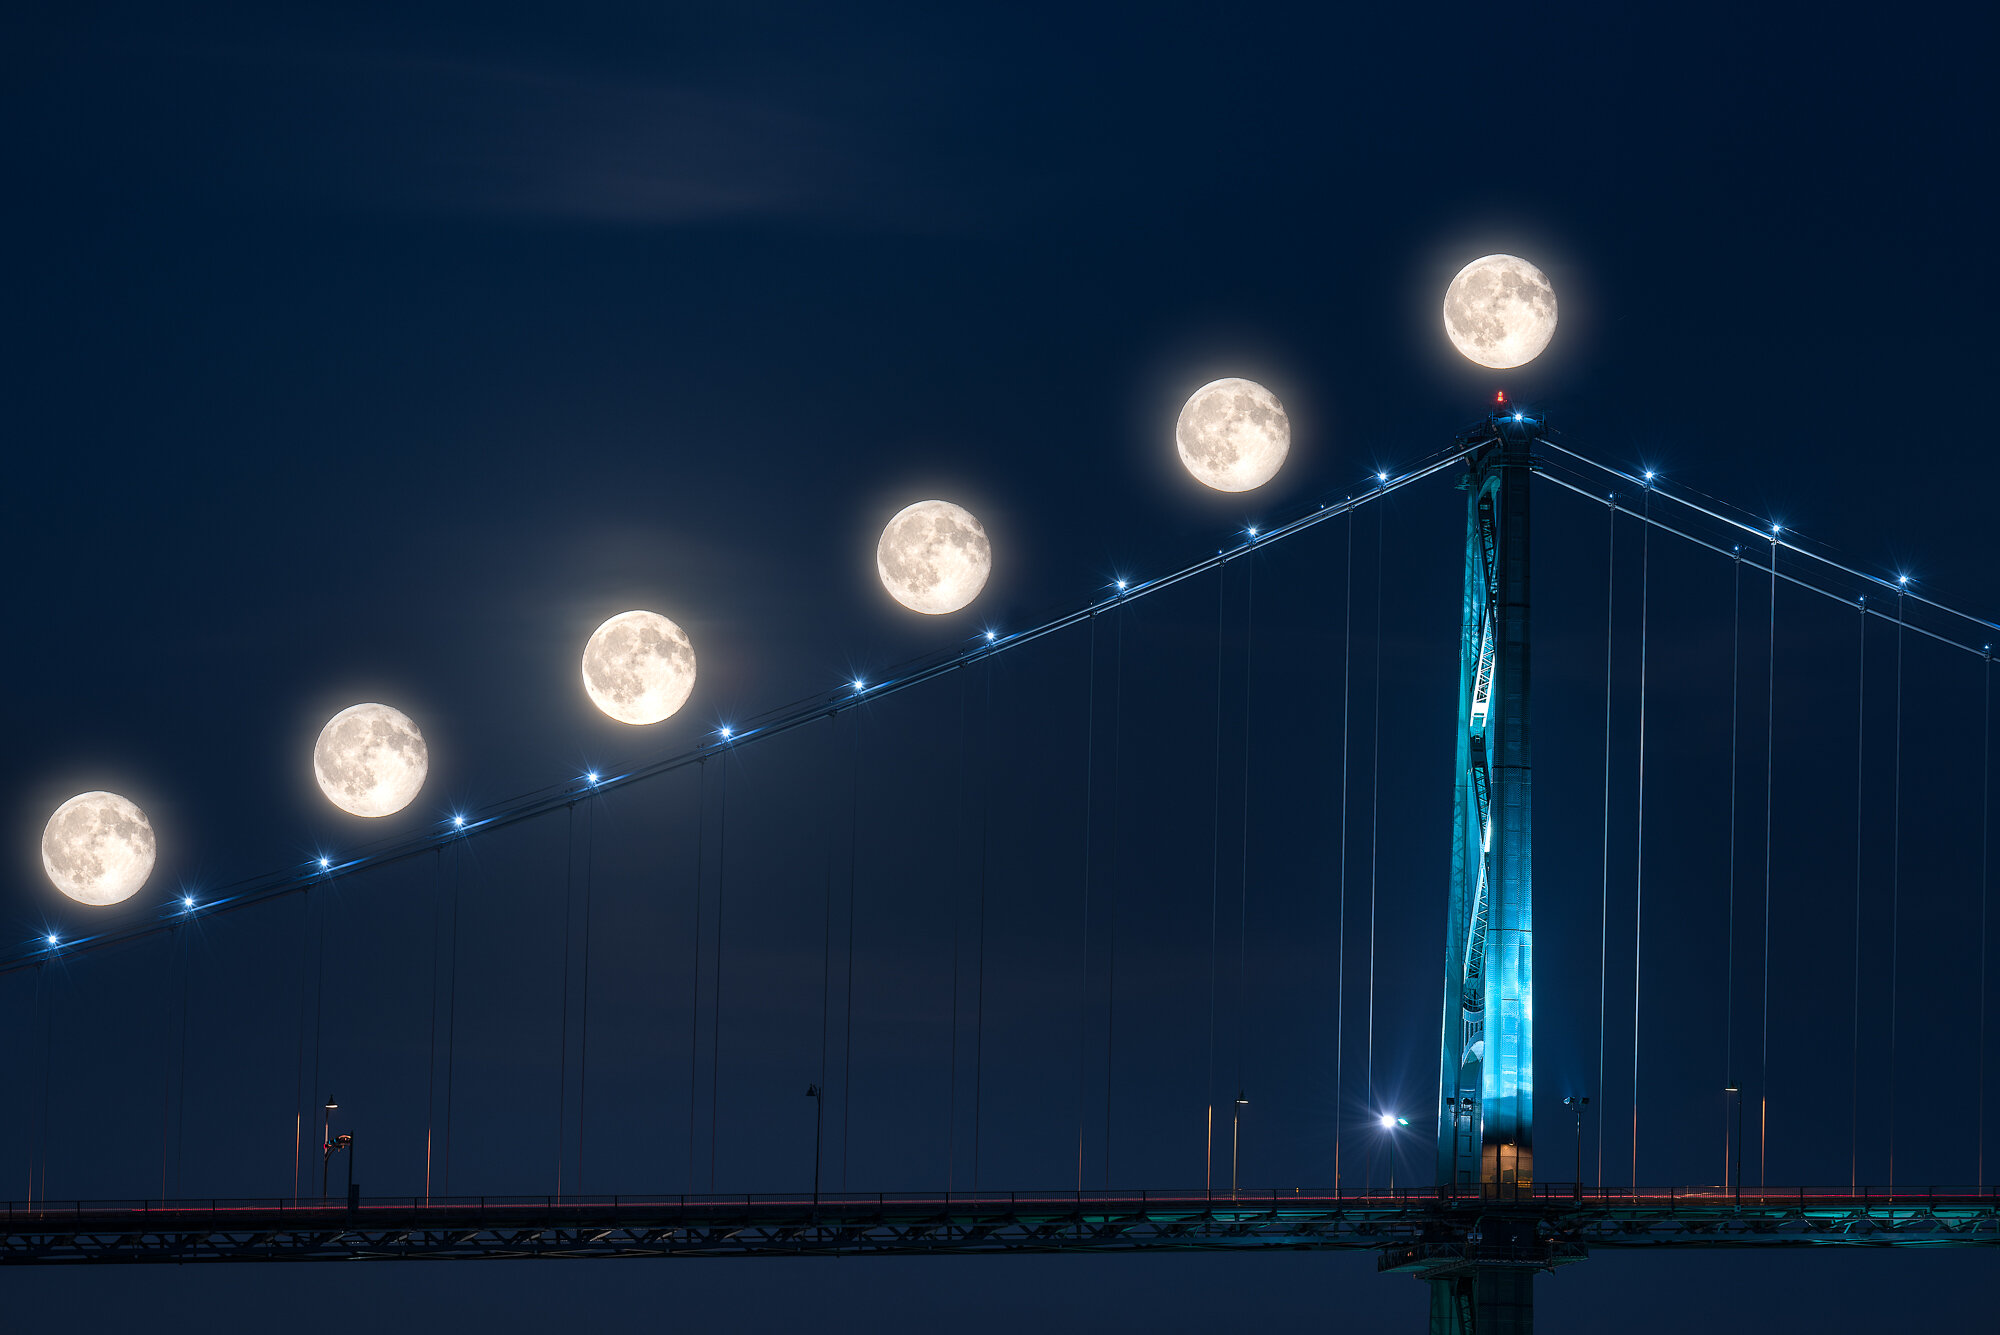 Vancouver City Photography: 'The Moon's Progression'